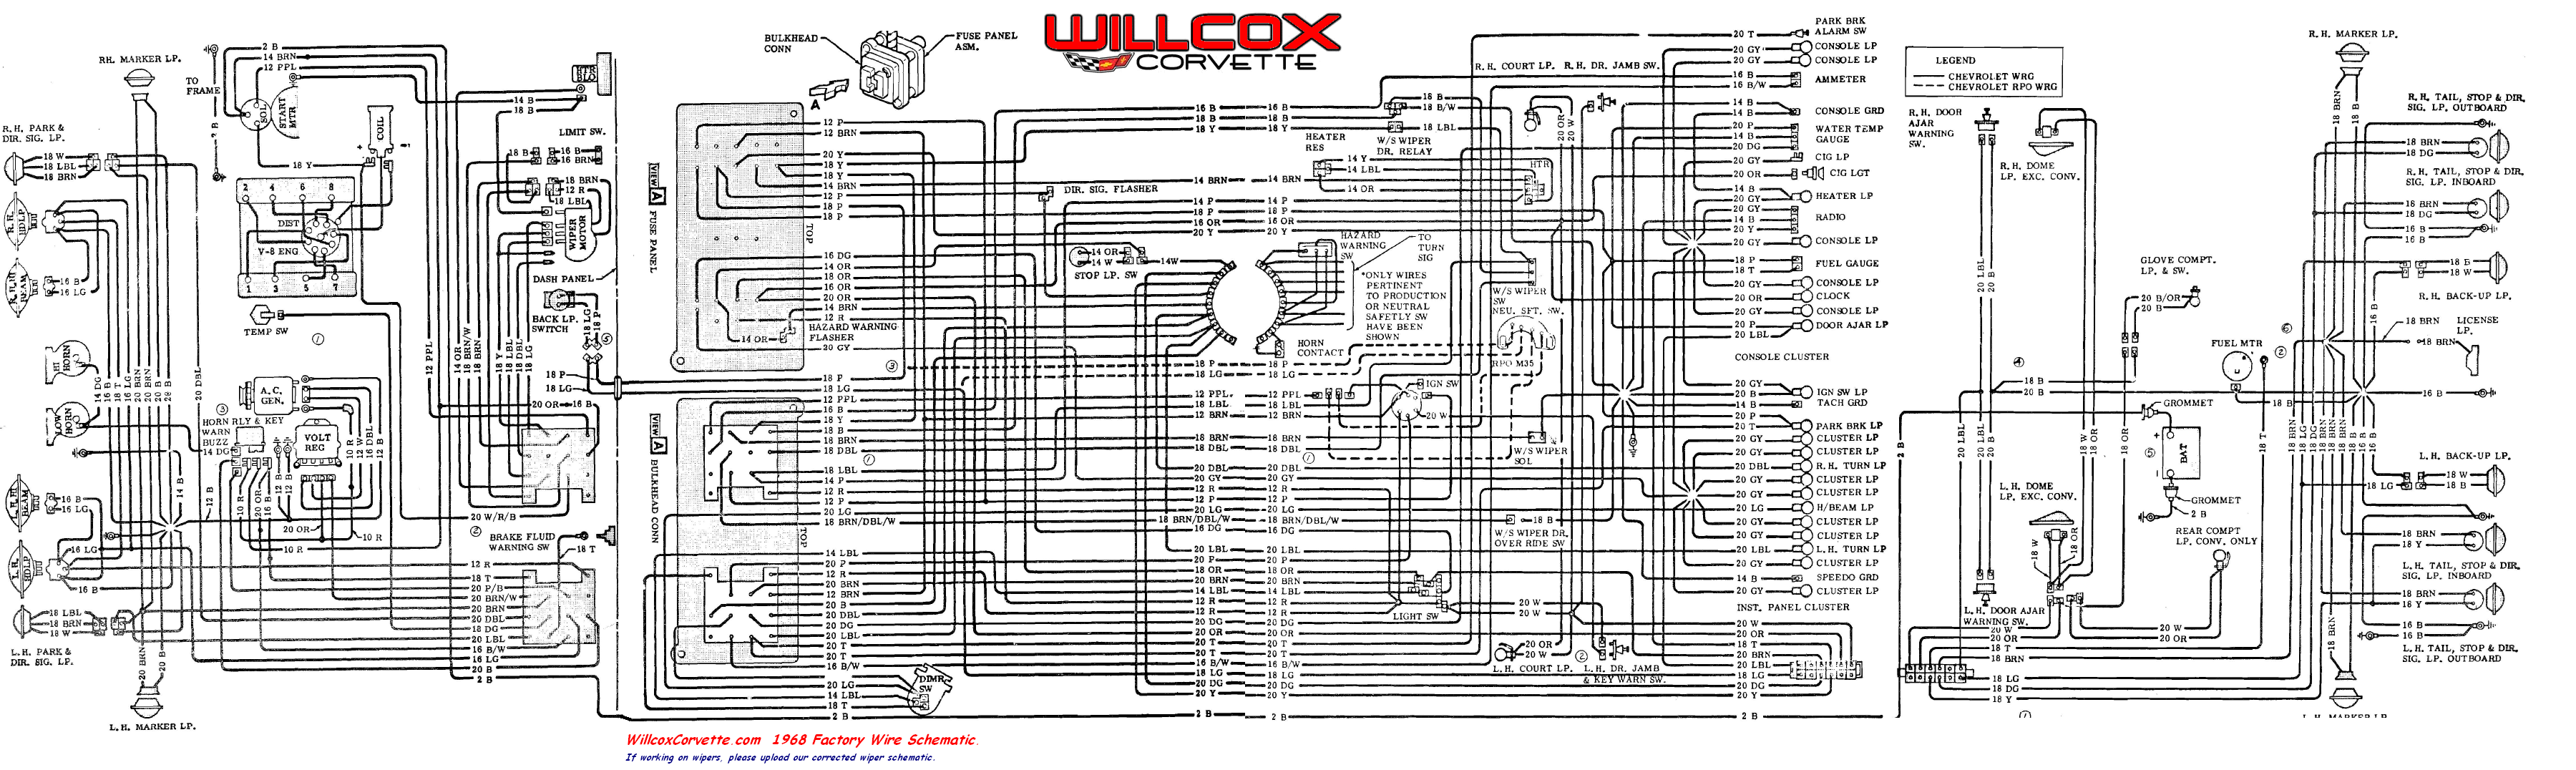 79 corvette wiring diagram - wiring diagrams rent-site-a -  rent-site-a.alcuoredeldiabete.it  al cuore del diabete